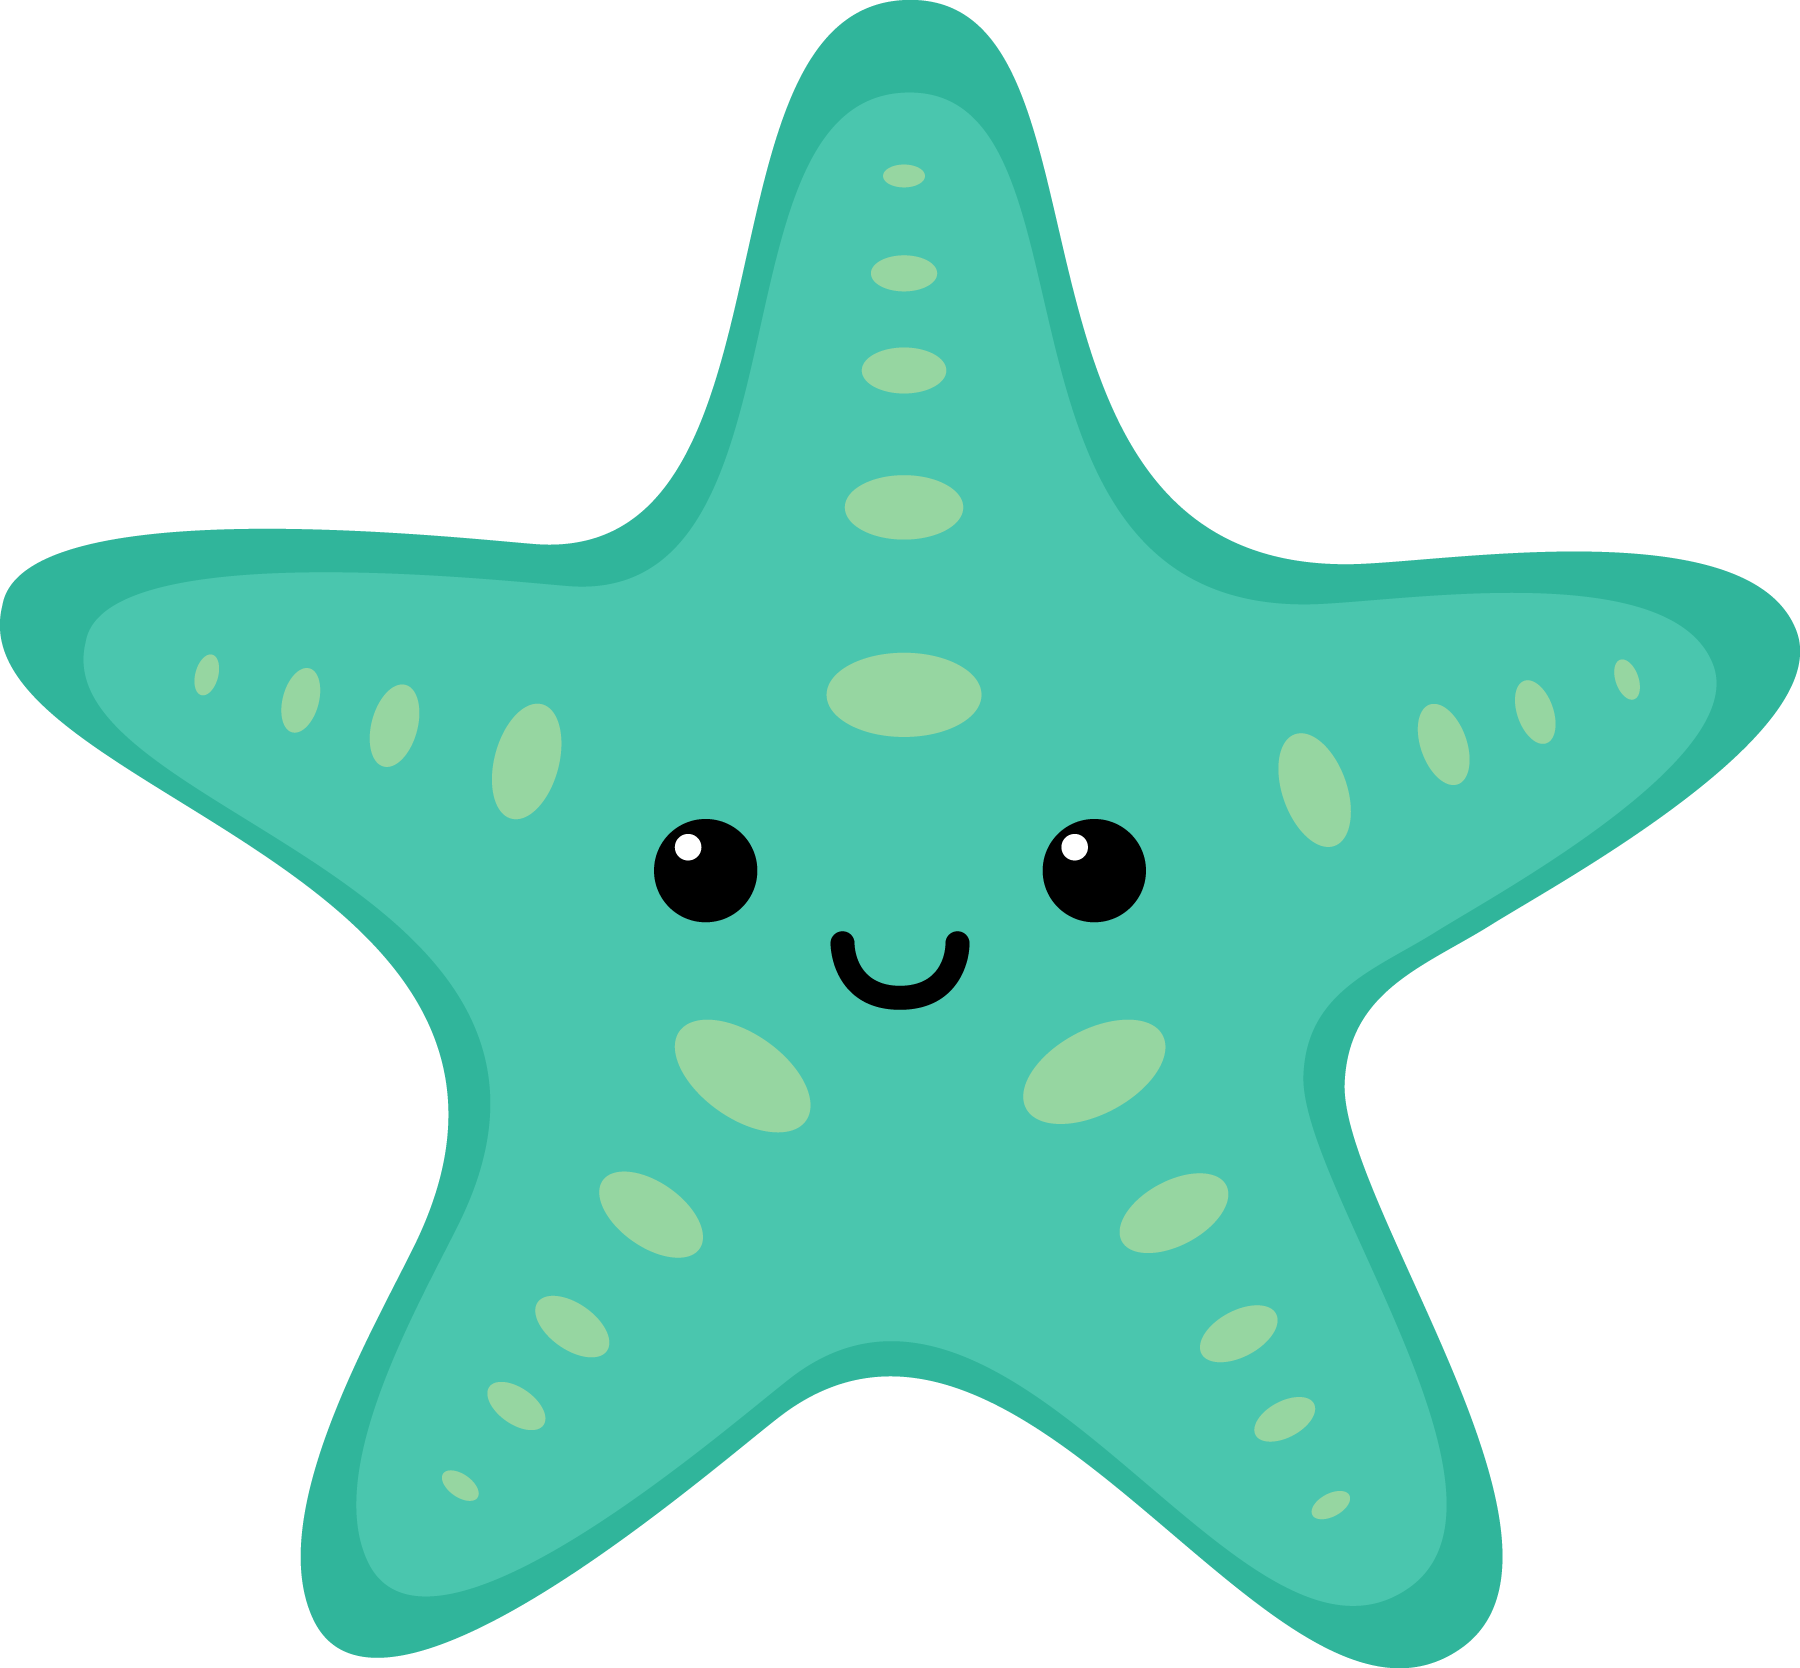 Sea star clipart turquoise svg freeuse library Sea Star Clipart at GetDrawings.com | Free for personal use Sea Star ... svg freeuse library